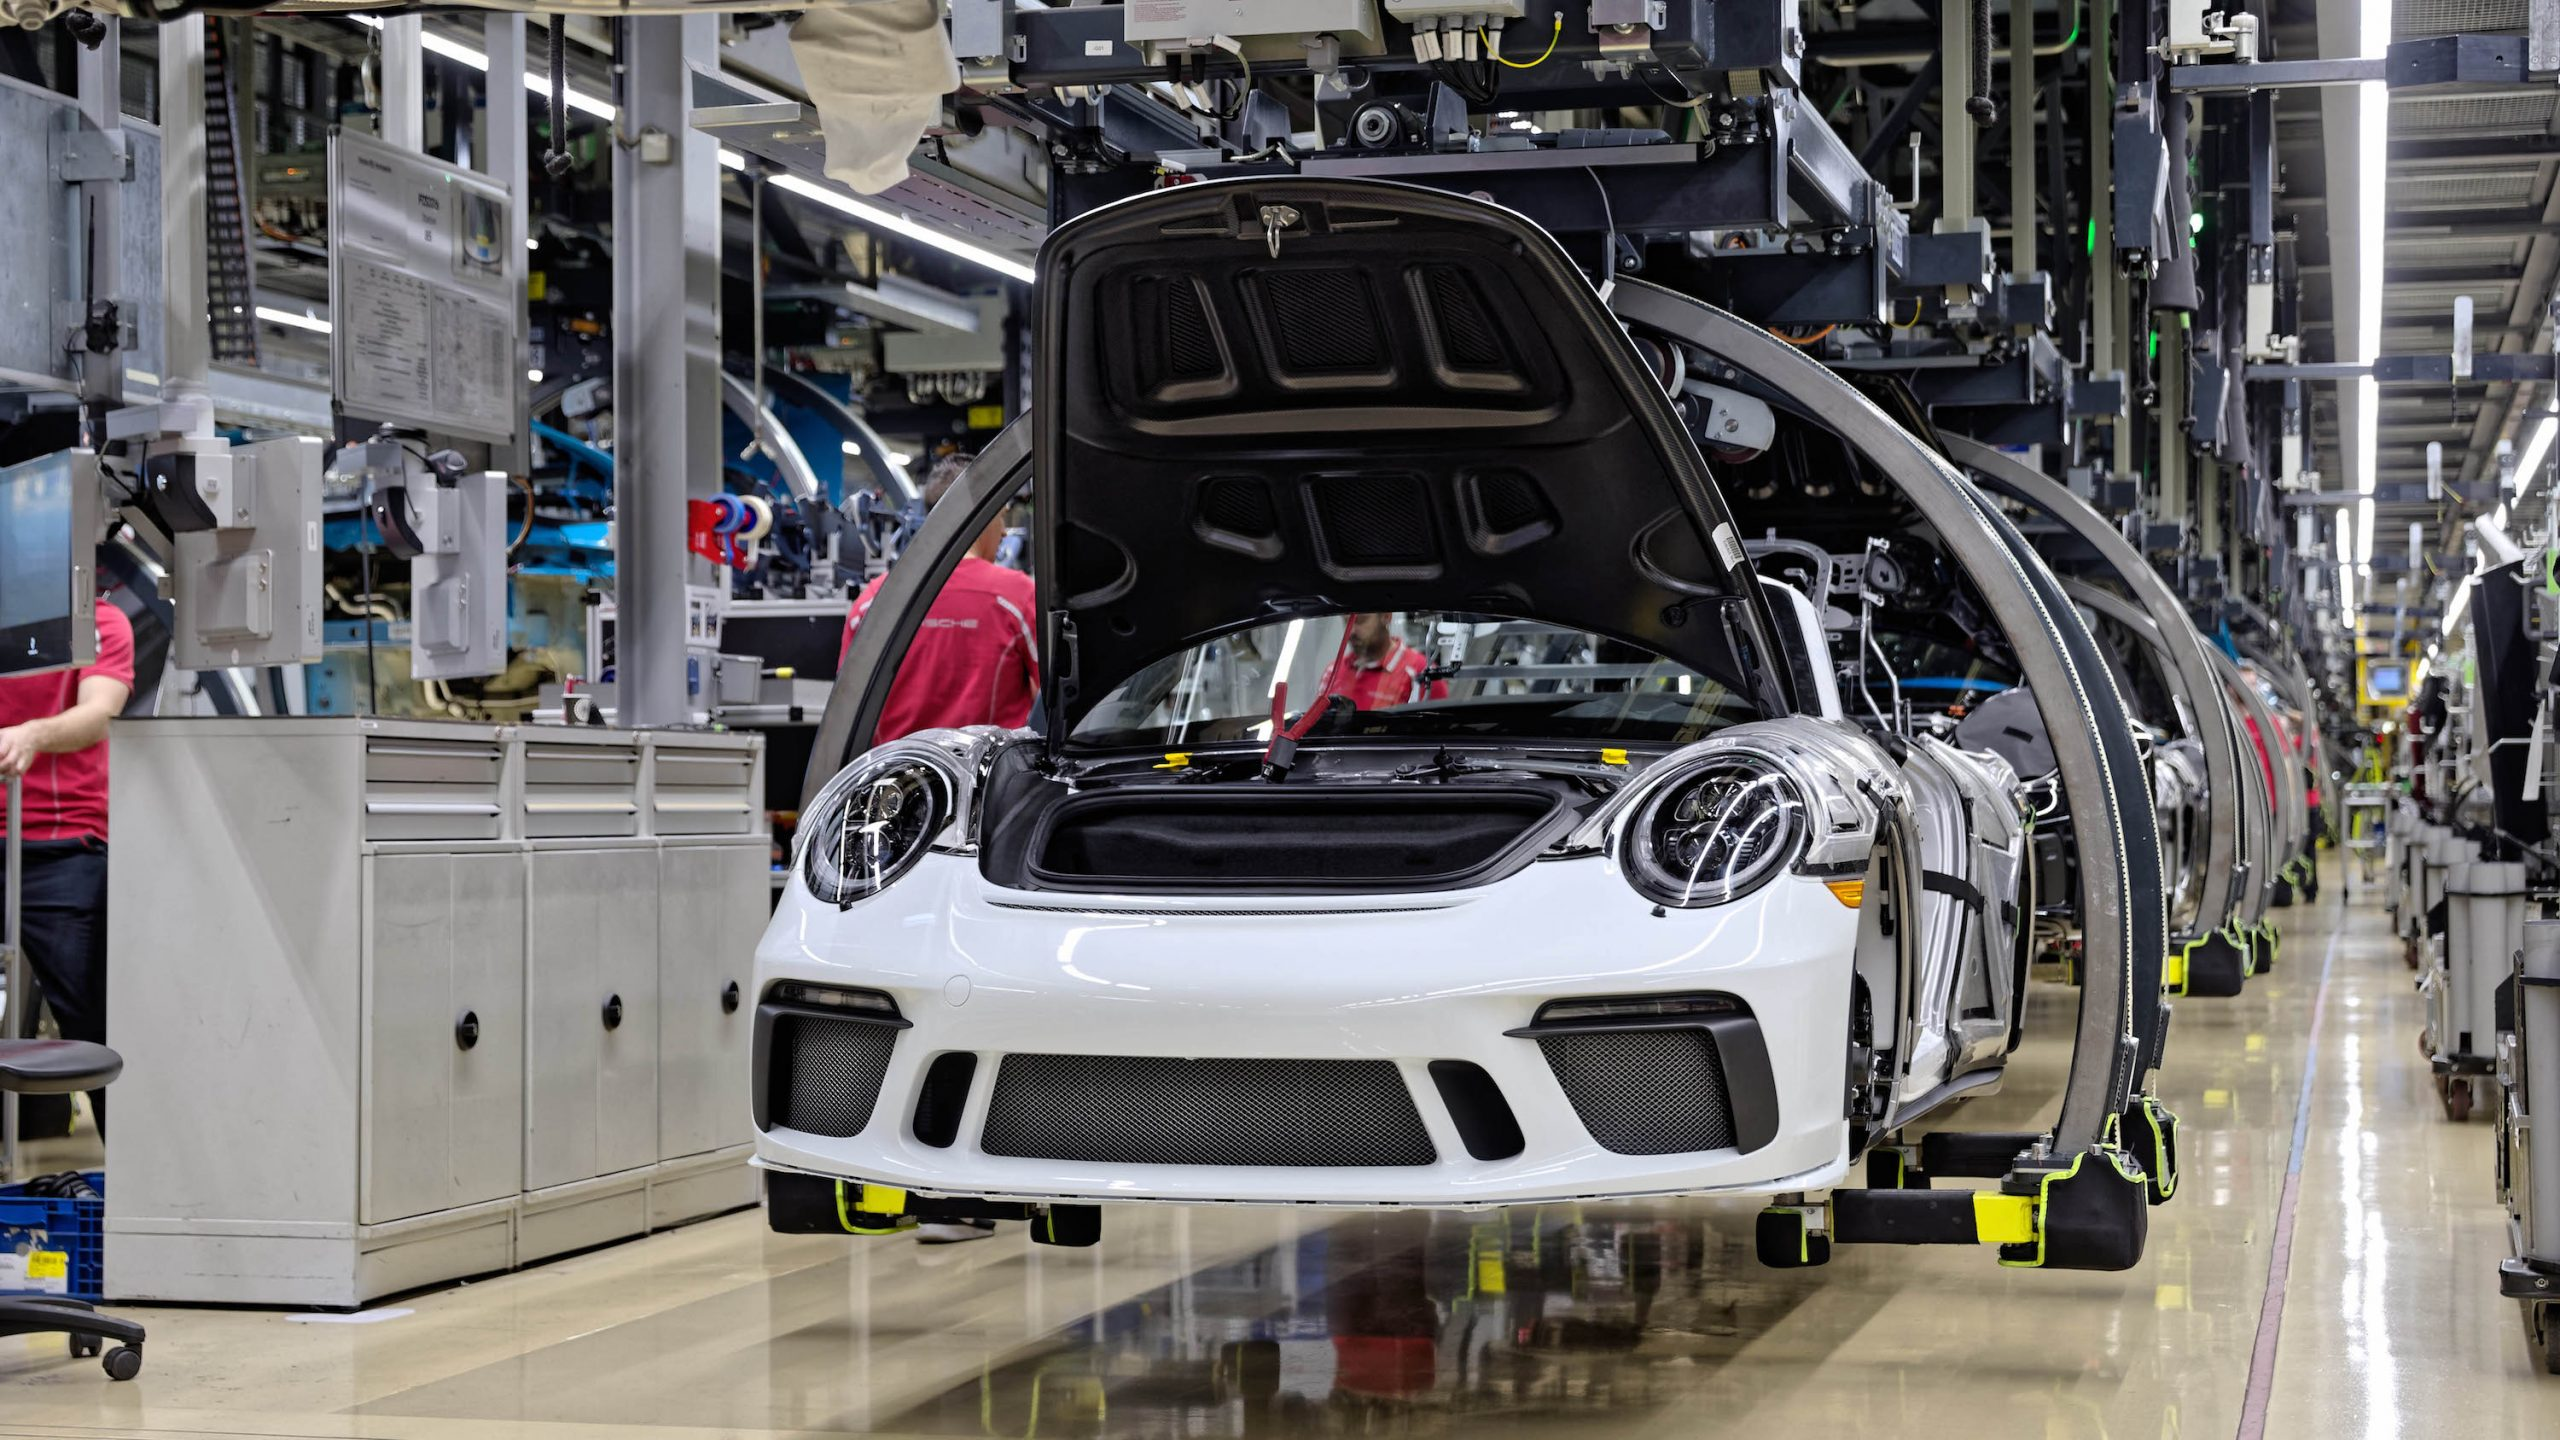 2019 Porsche 911 Speedster Heritage Design Assembly at Factory